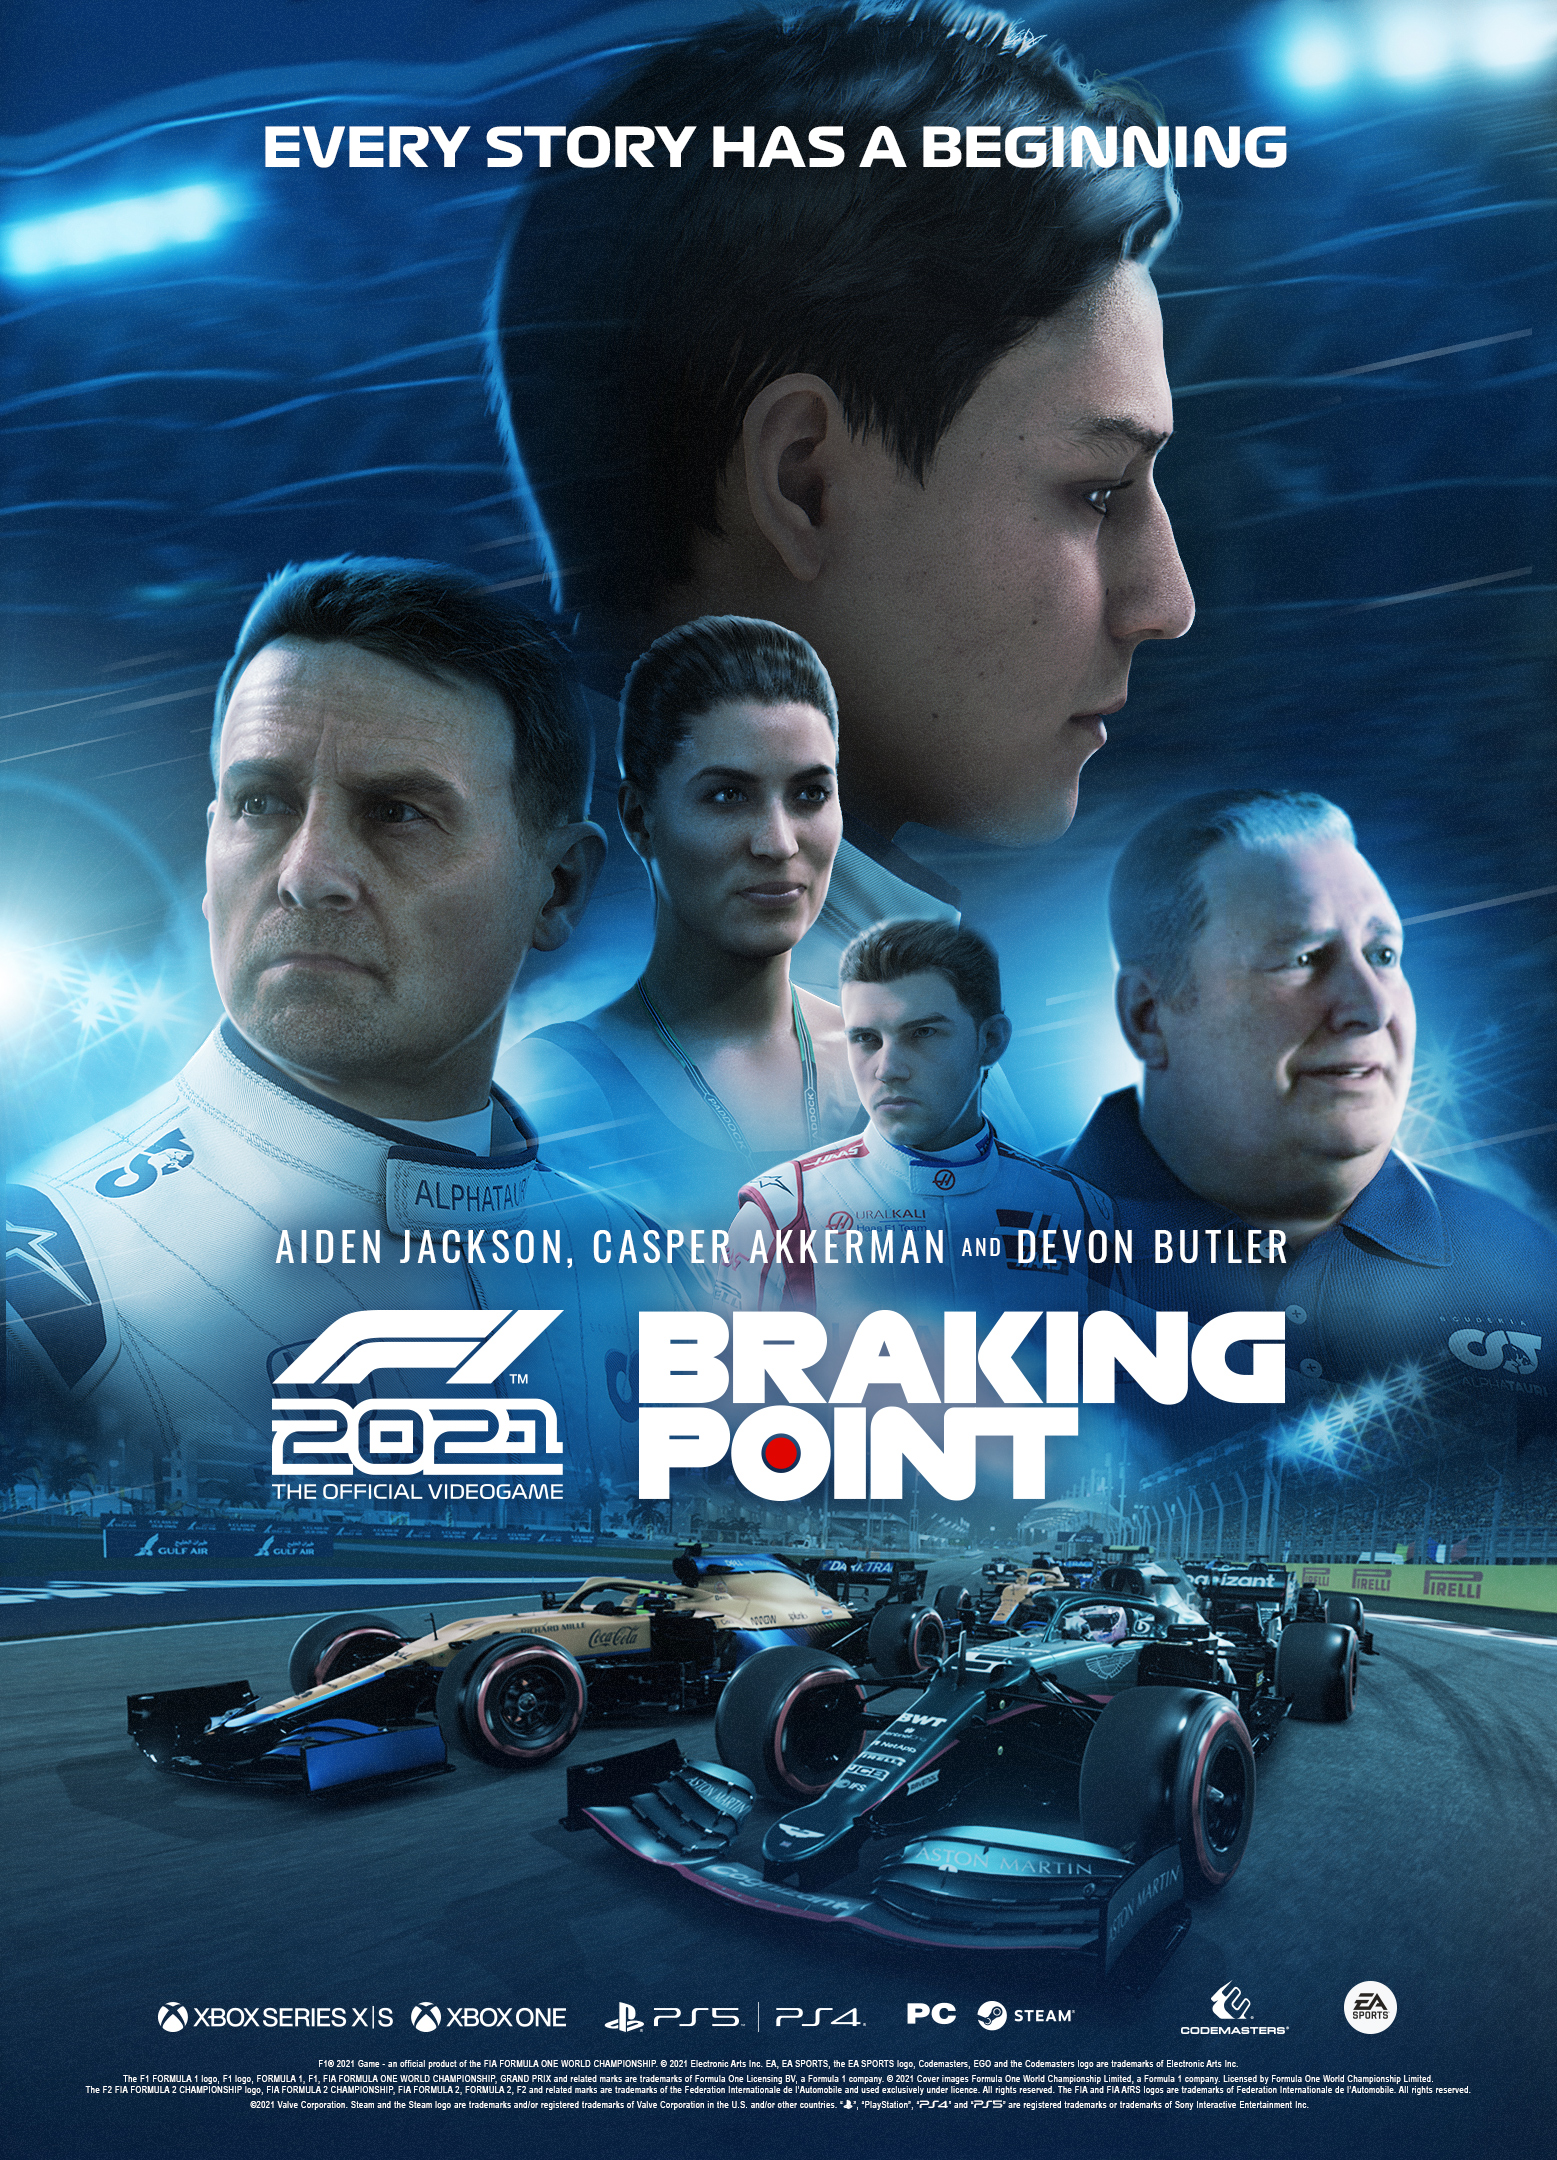 REALTIME team up with Codemasters for F1 2021 'Braking Point'